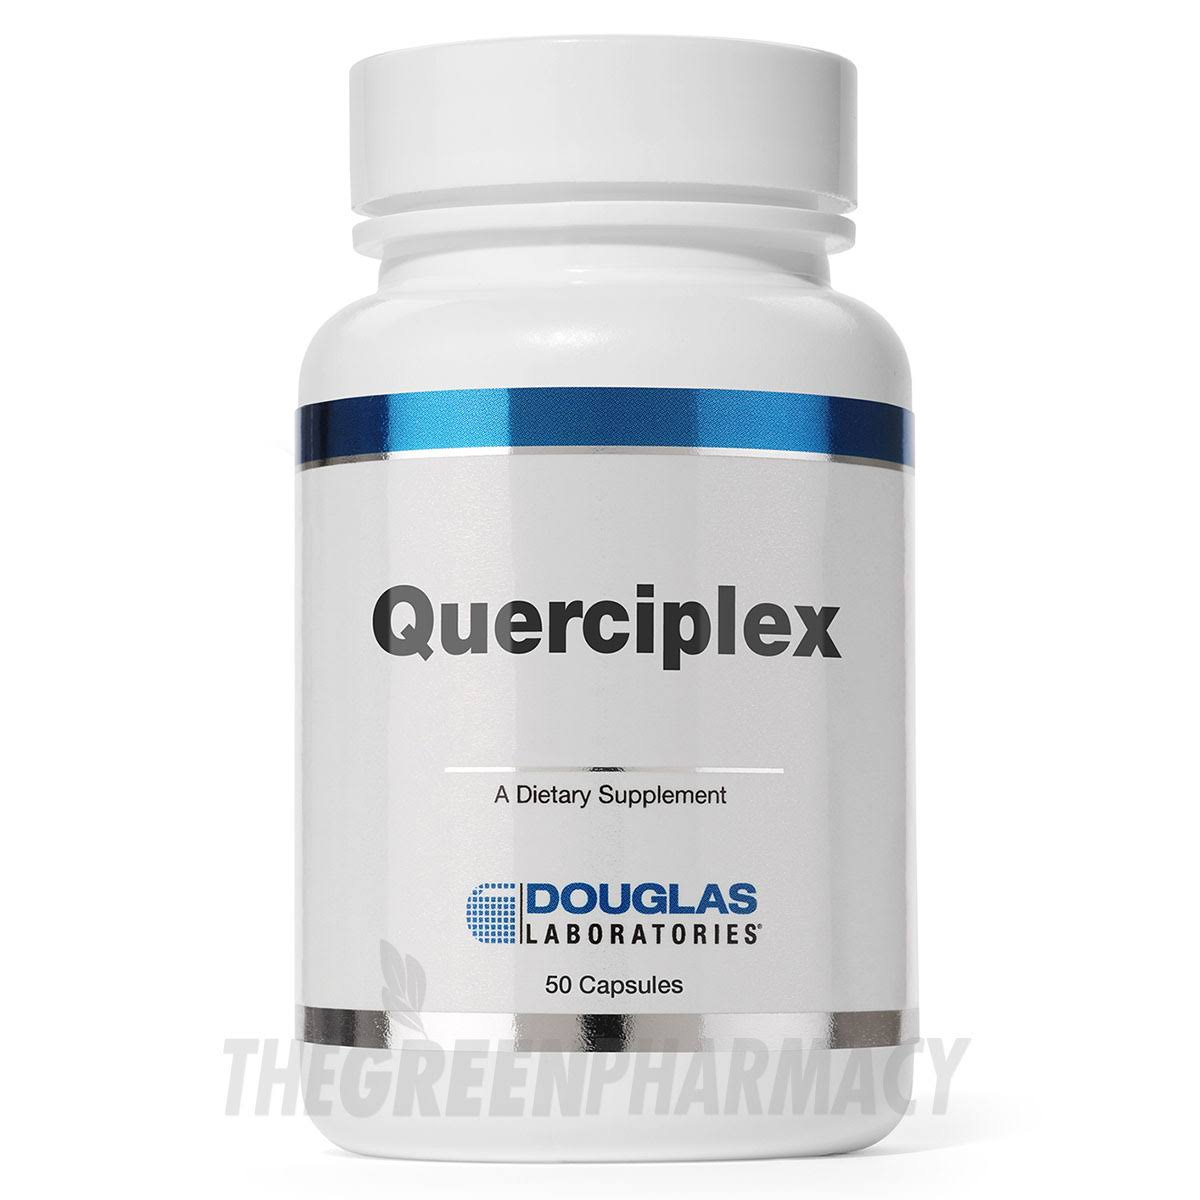 Douglas Laboratories Querciplex Suppement - 100 Capsules